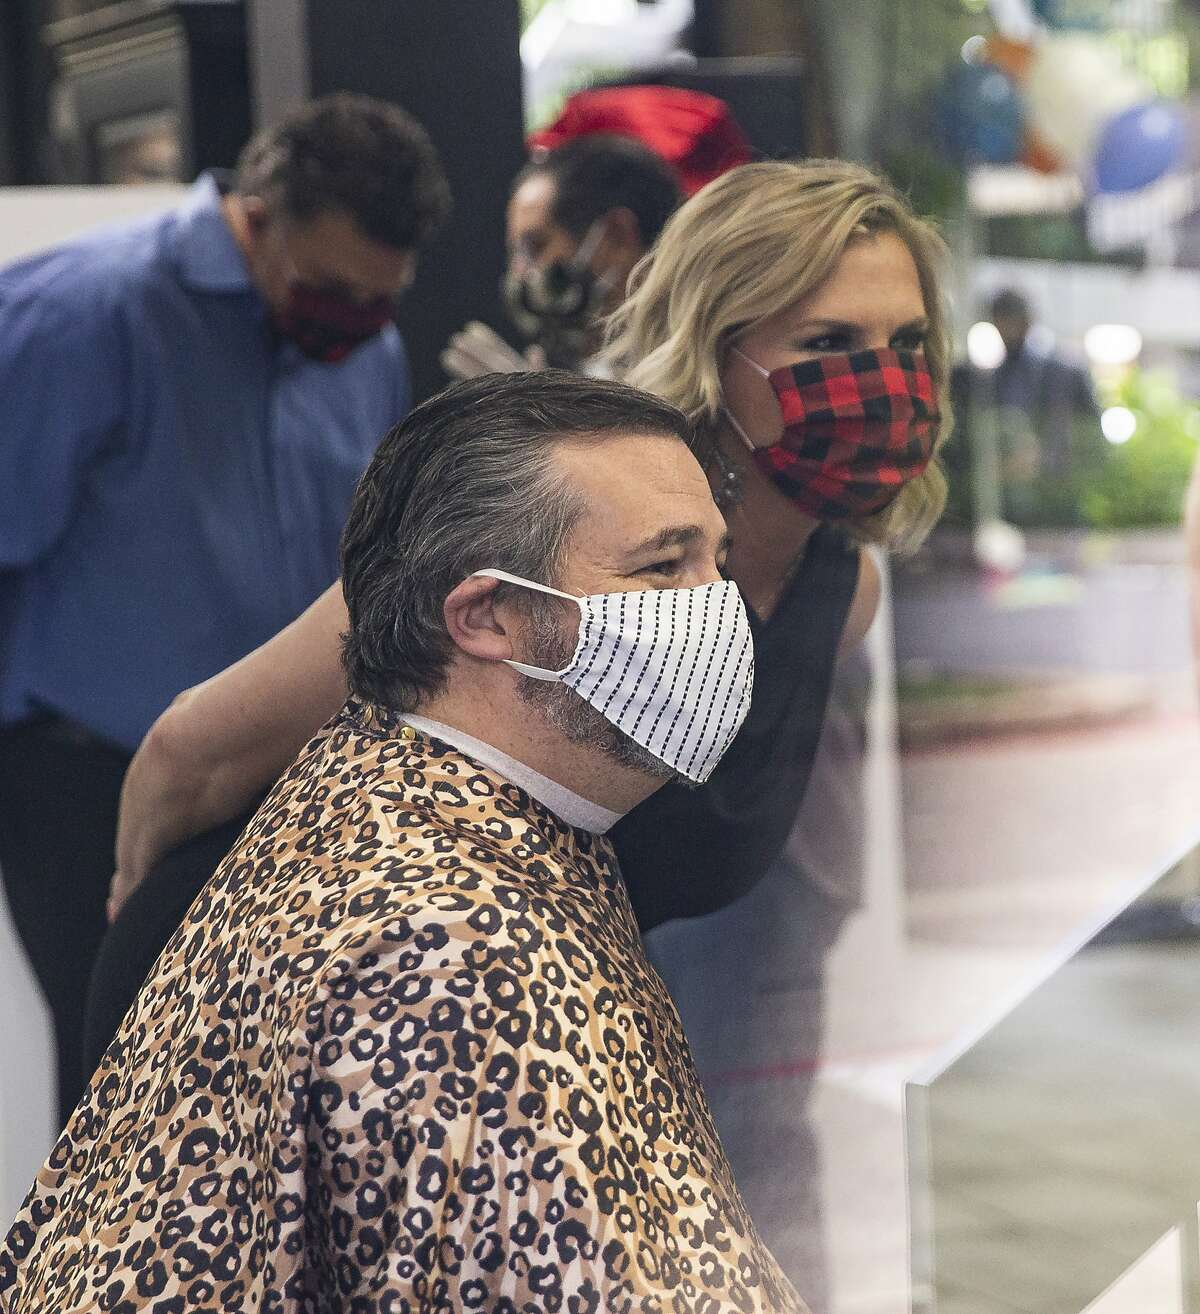 U.S. Sen. Ted Cruz chats with owner Shelley Luther before getting a haircut at Salon a la Mode on May 8, 2020 in Dallas. (Juan Figueroa/ The Dallas Morning News/TNS)